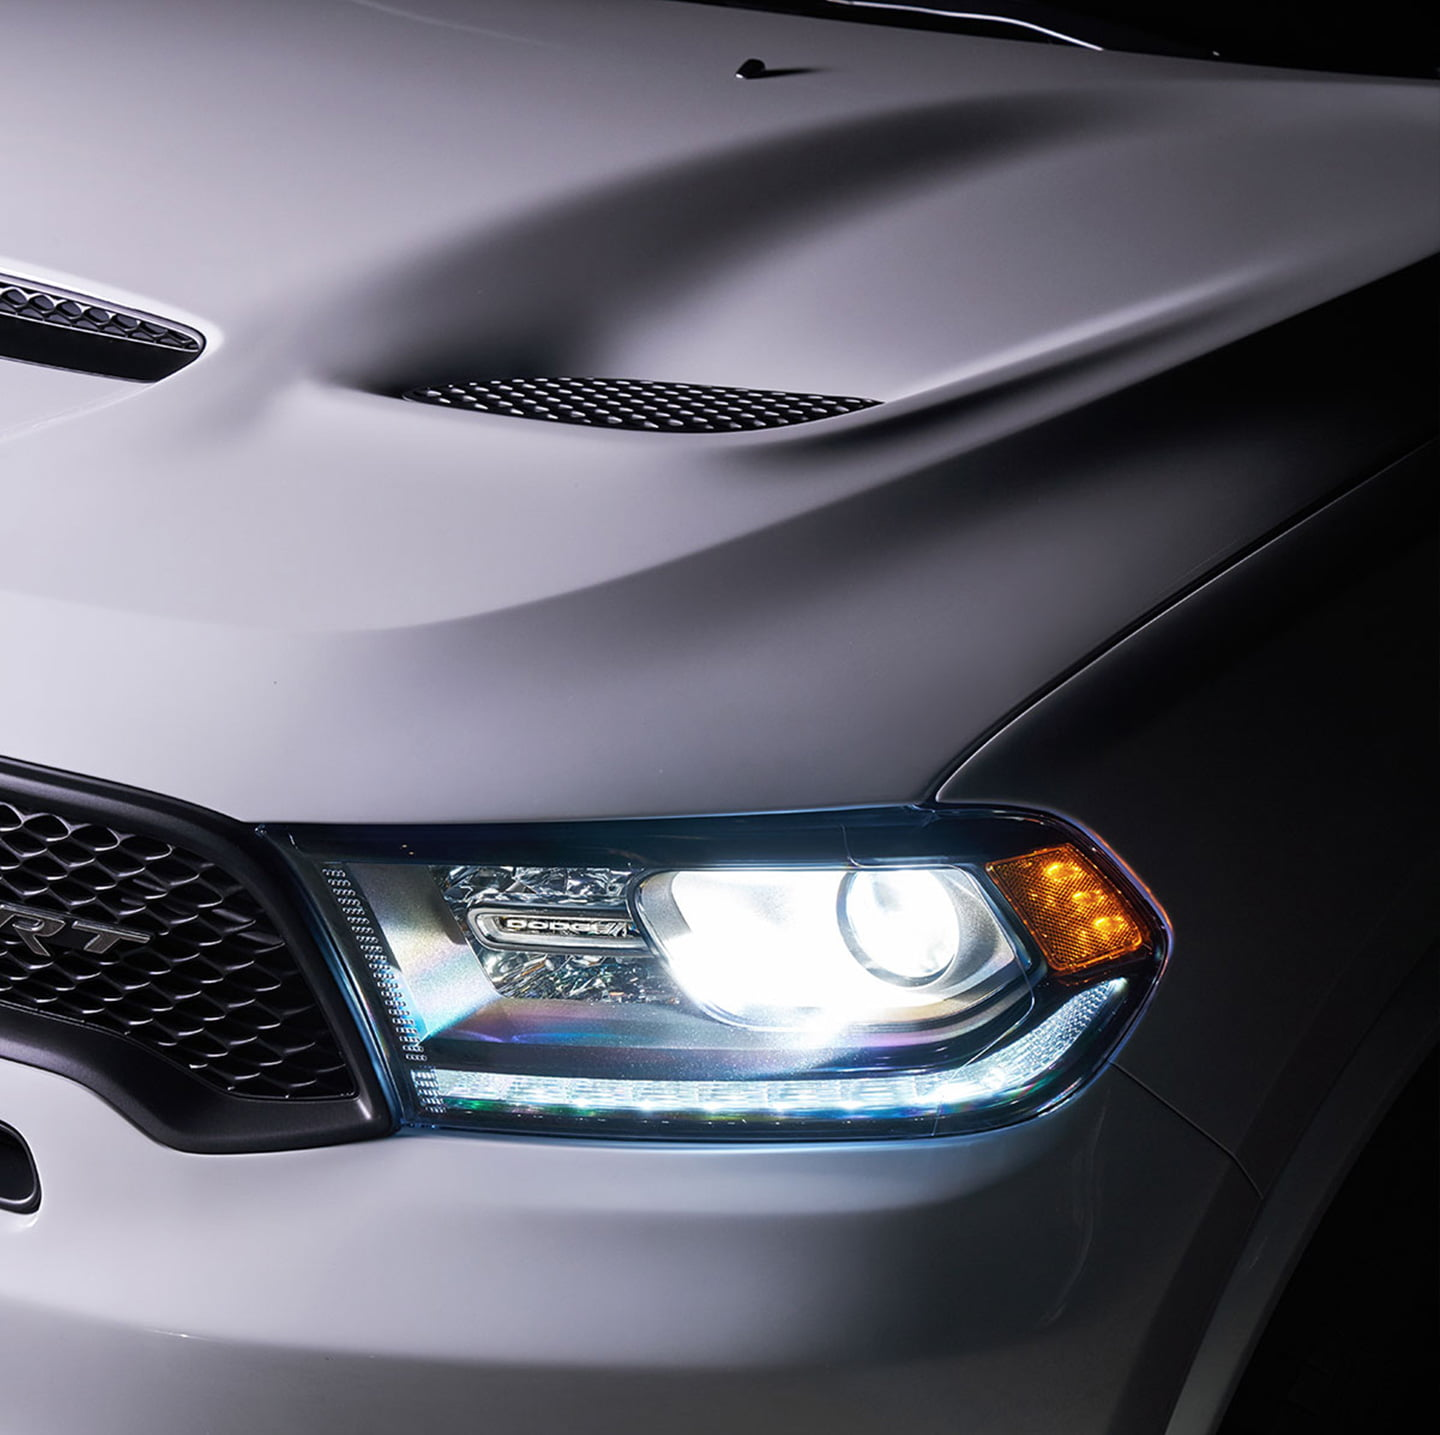 2019 dodge durango exterior projector fog lamps Agt Europe